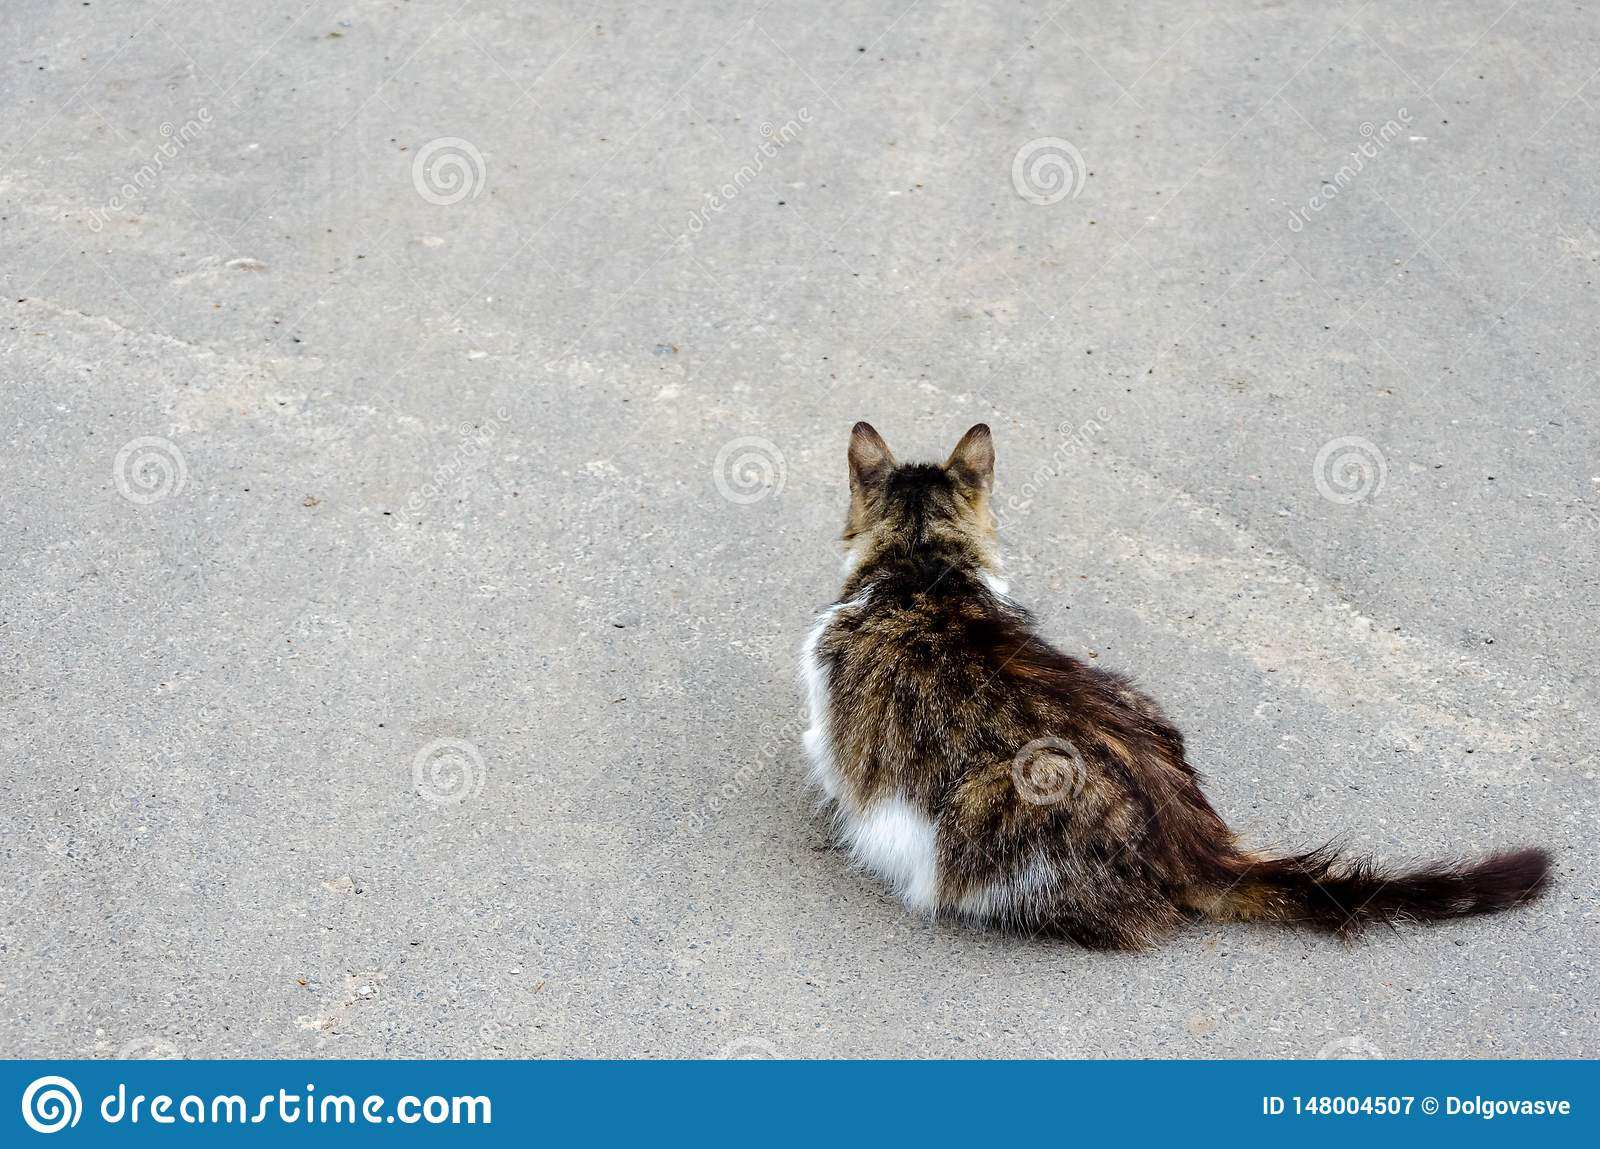 Cat walking at the ground. Copy space